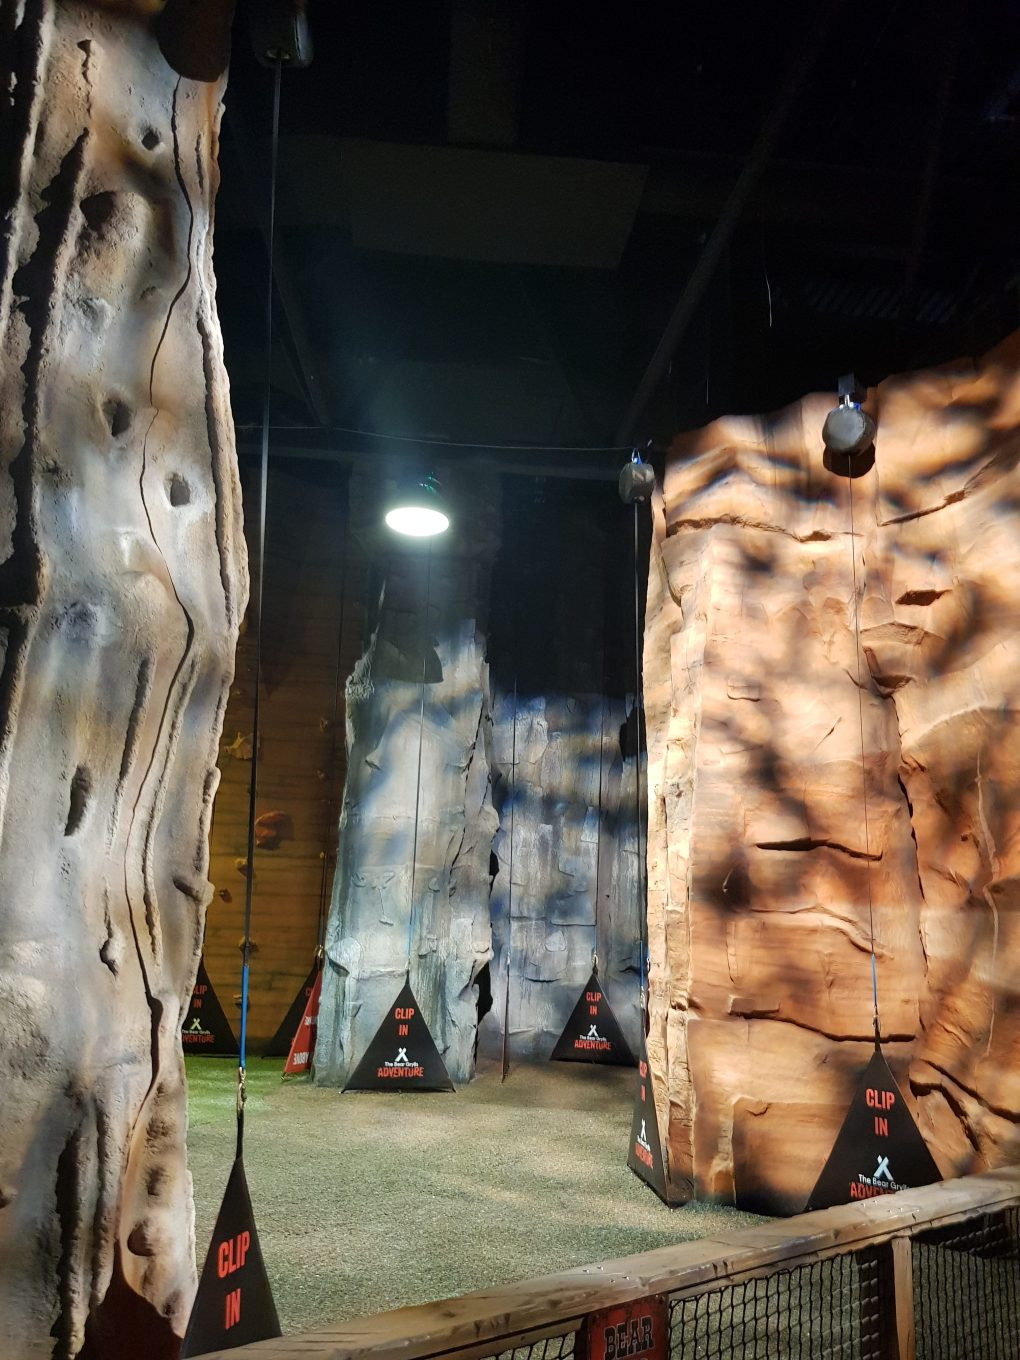 Adrenaline Rush Activities. Some of the more difficult climbing walls designed to look like real rock faces with bumbs and ridges in brown and grey colours.